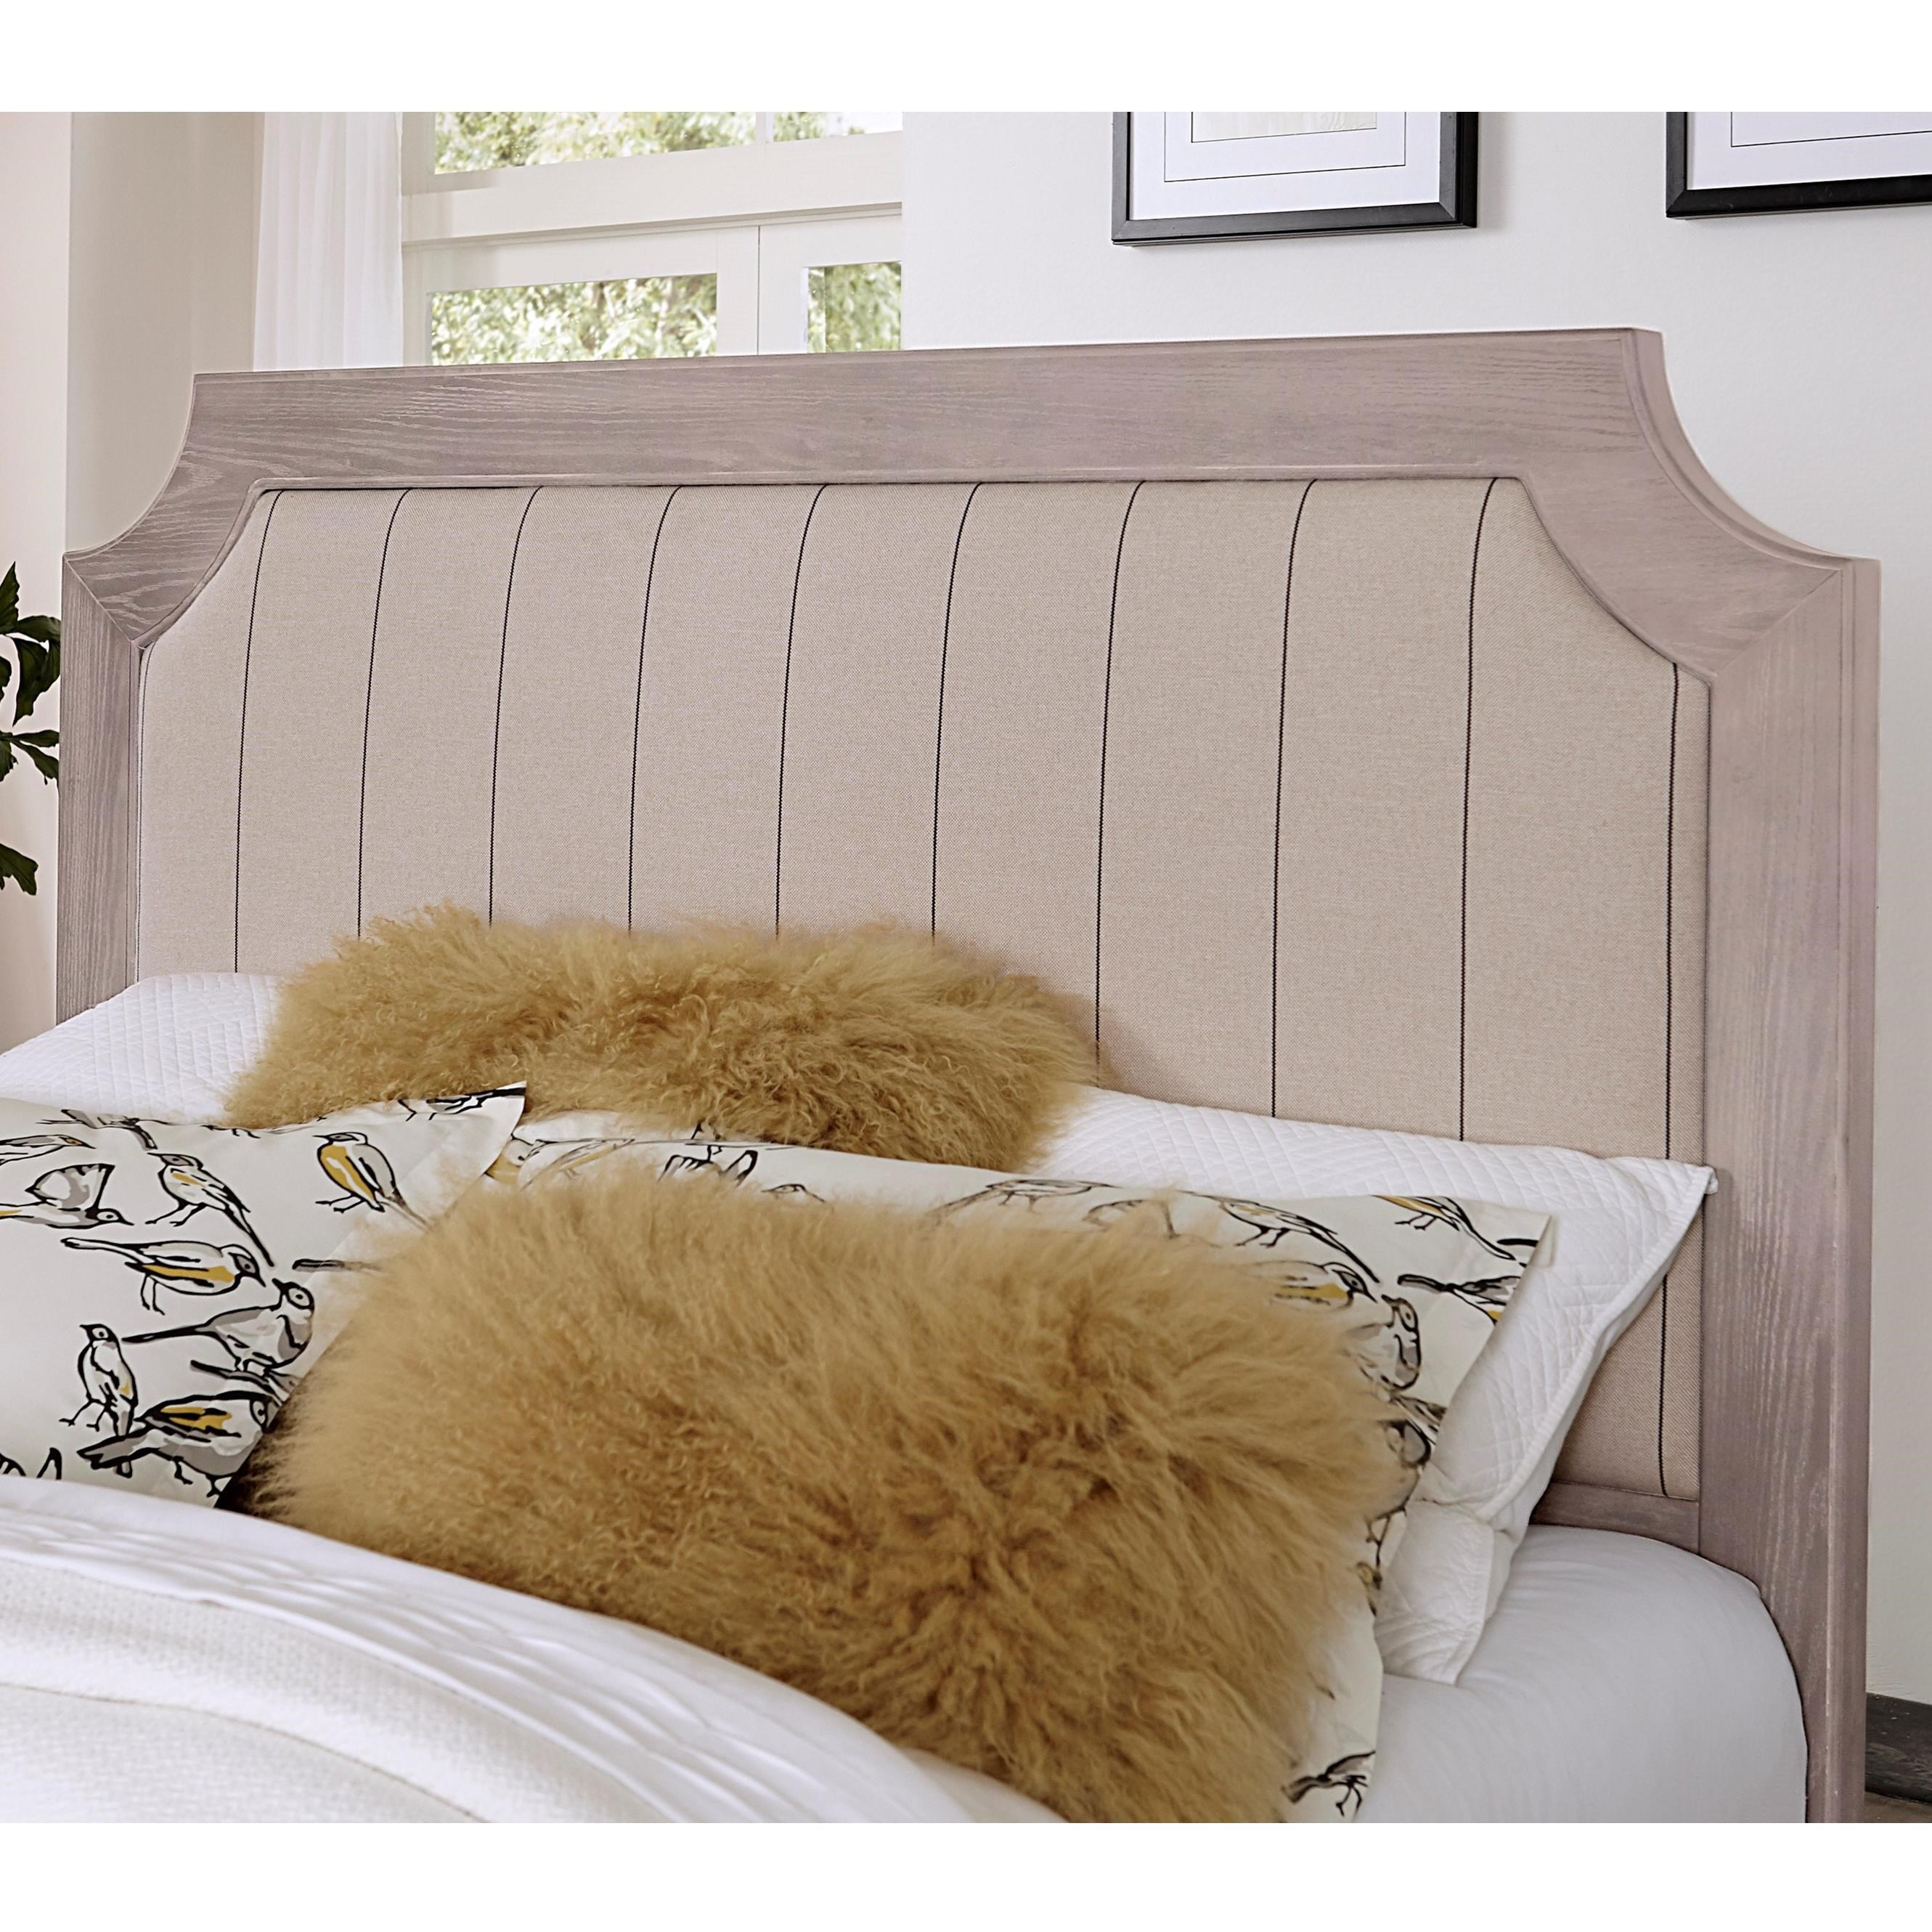 Bungalow Twin Upholstered Headboard by Laurel Mercantile Co. at Johnny Janosik